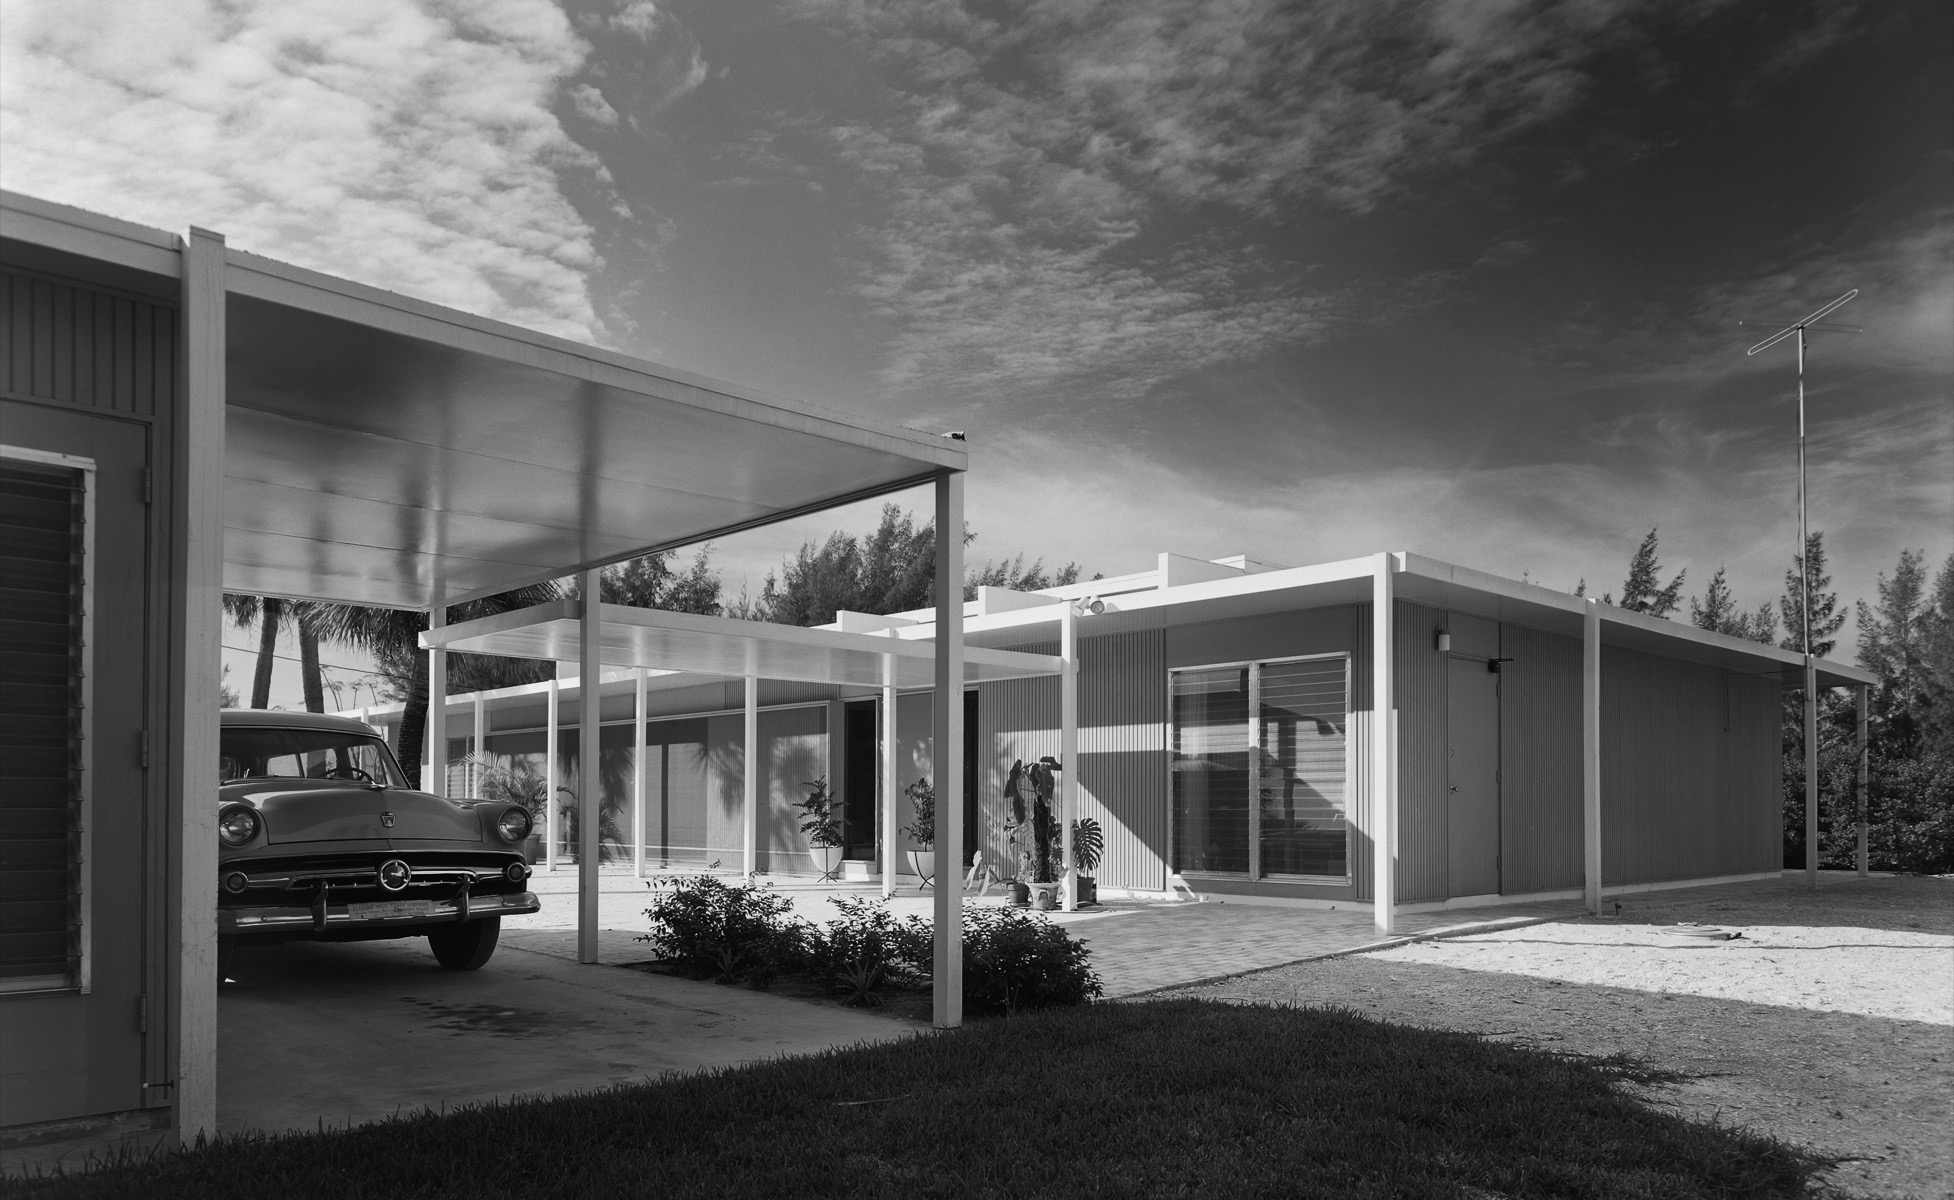 Cohen House. Paul Rudolph. Siesta Key, FL, 1955 © Ezra Stoller, Courtesy Yossi Milo Gallery, New York